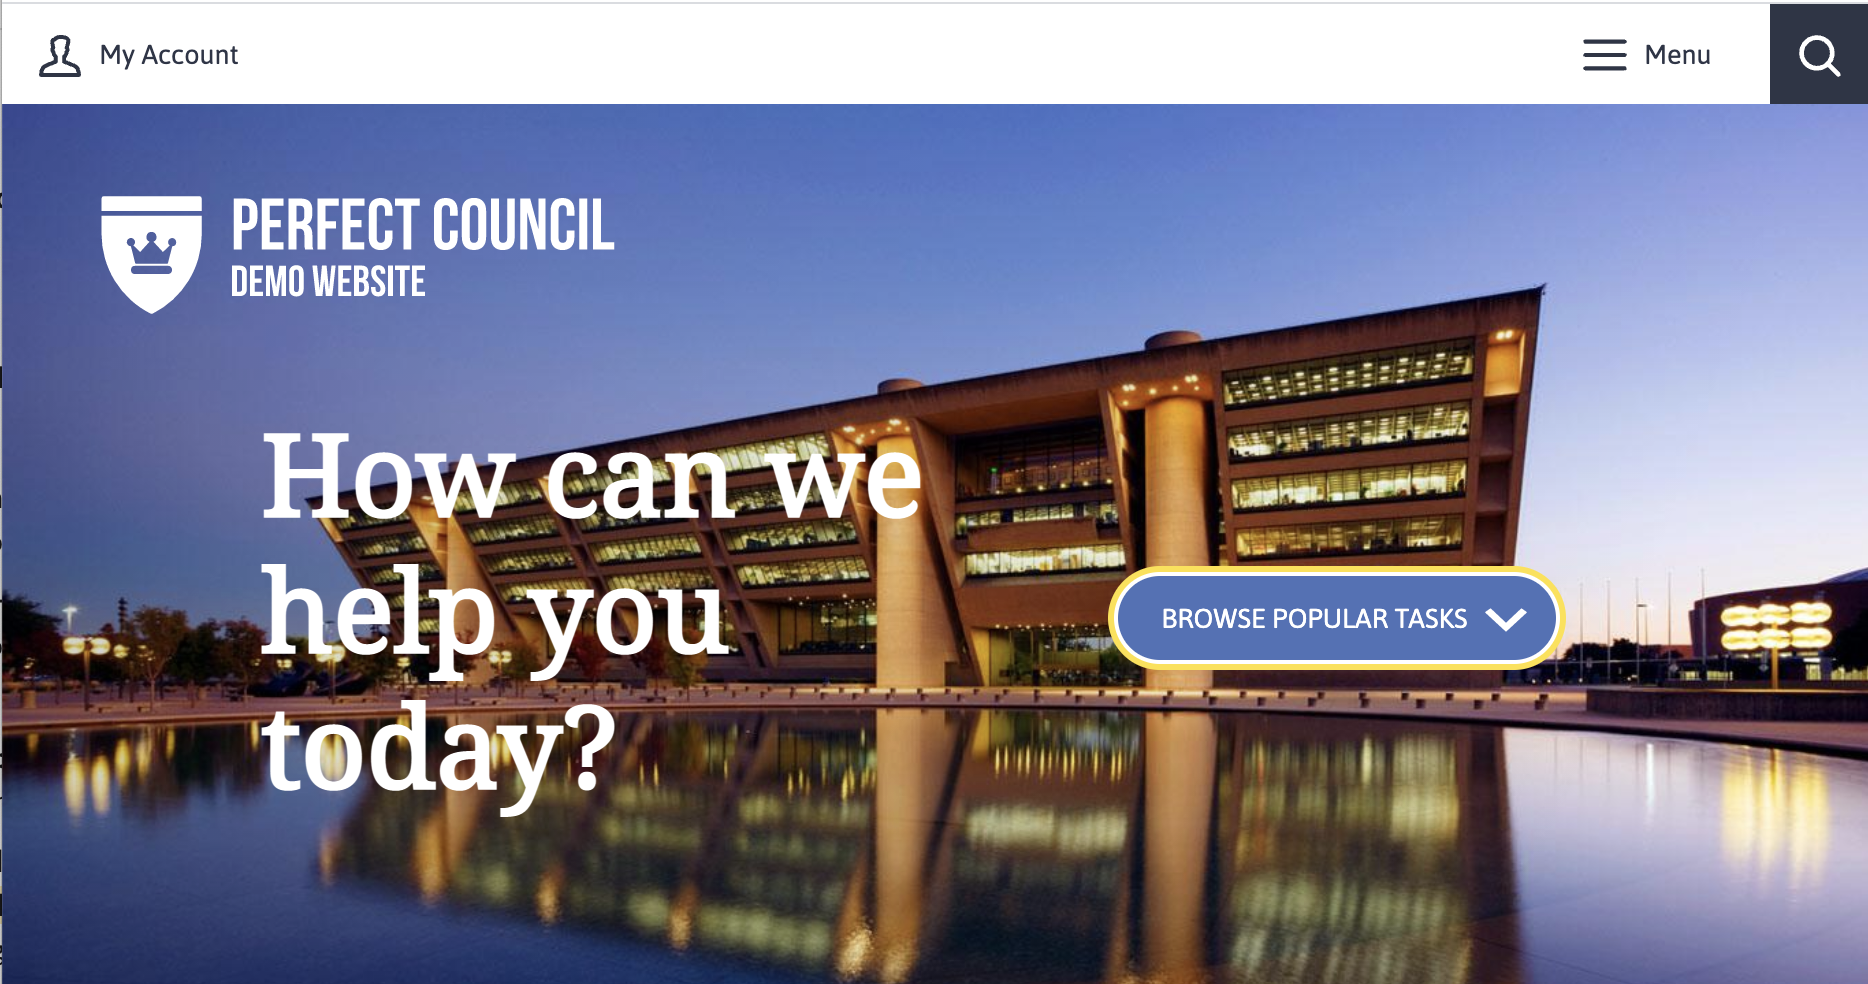 Perfect council website